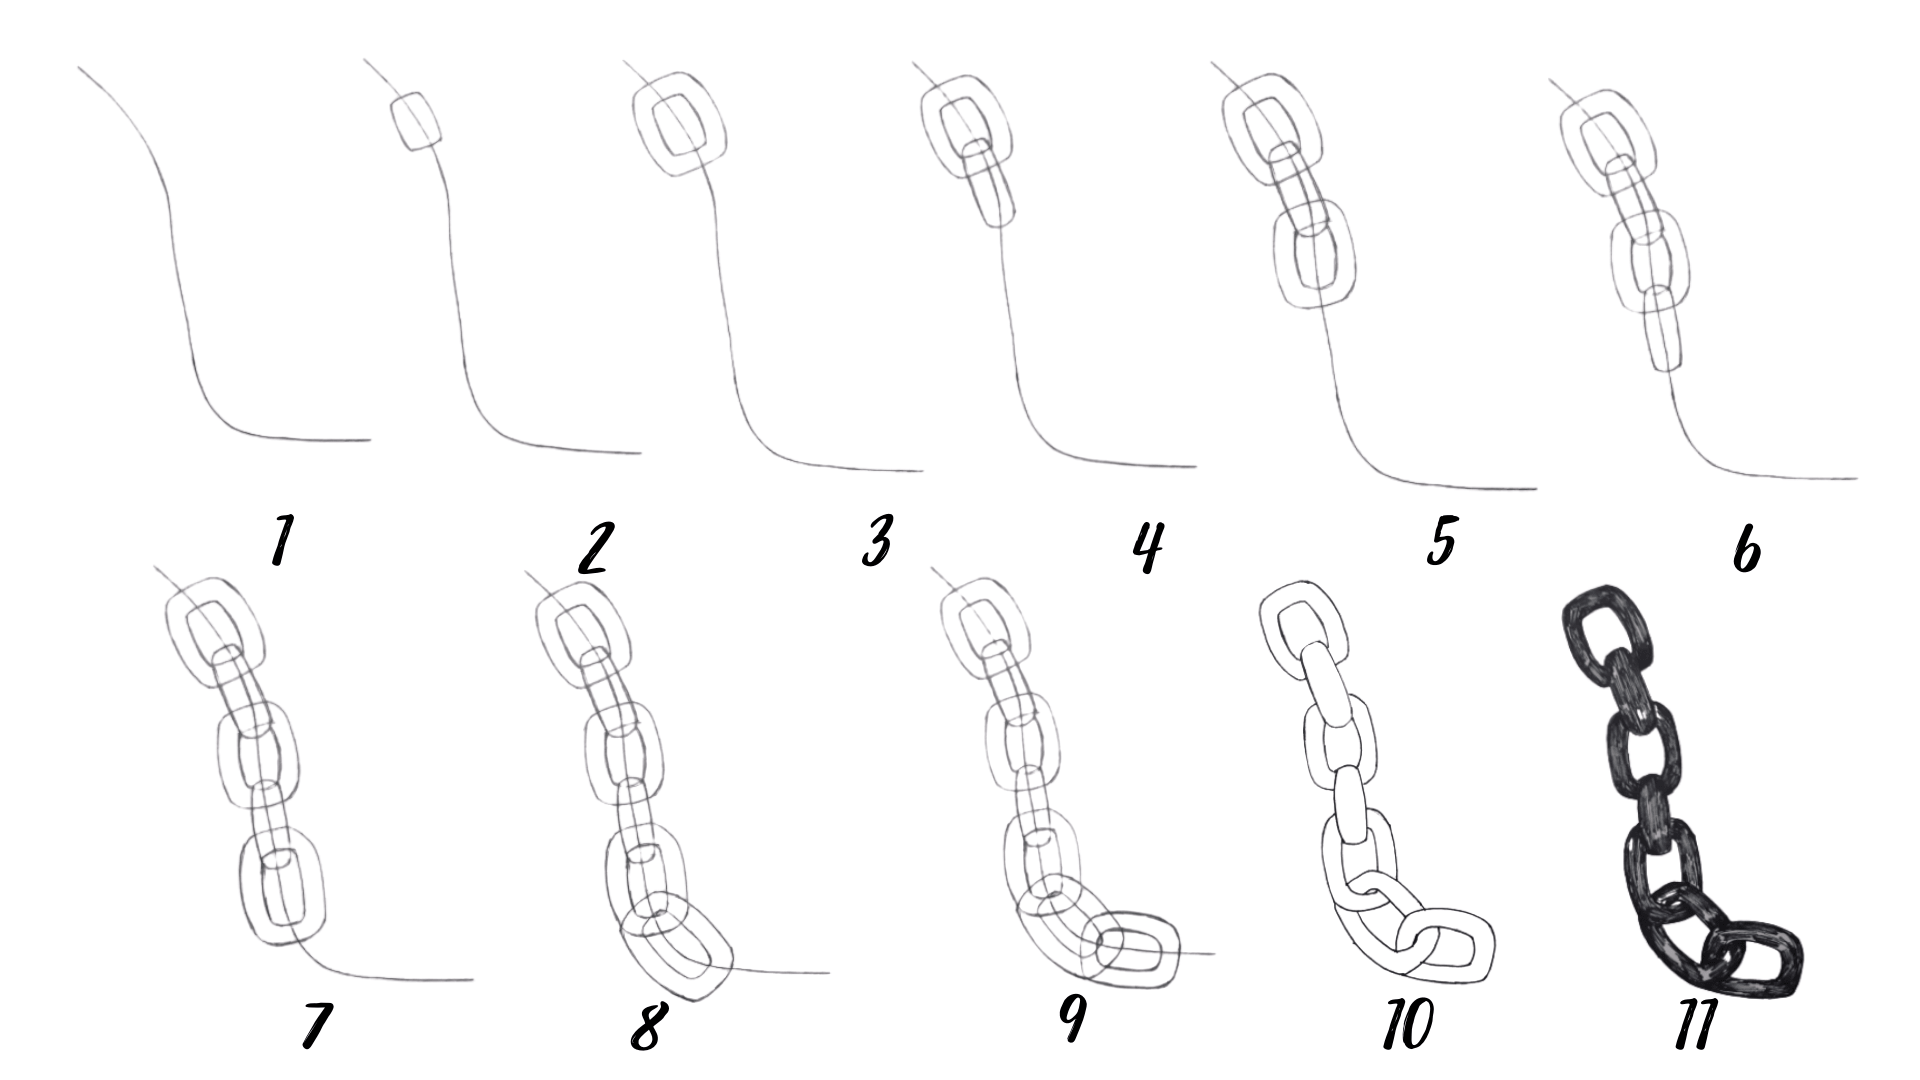 How To Draw A Chain Step By Step Easy Guides